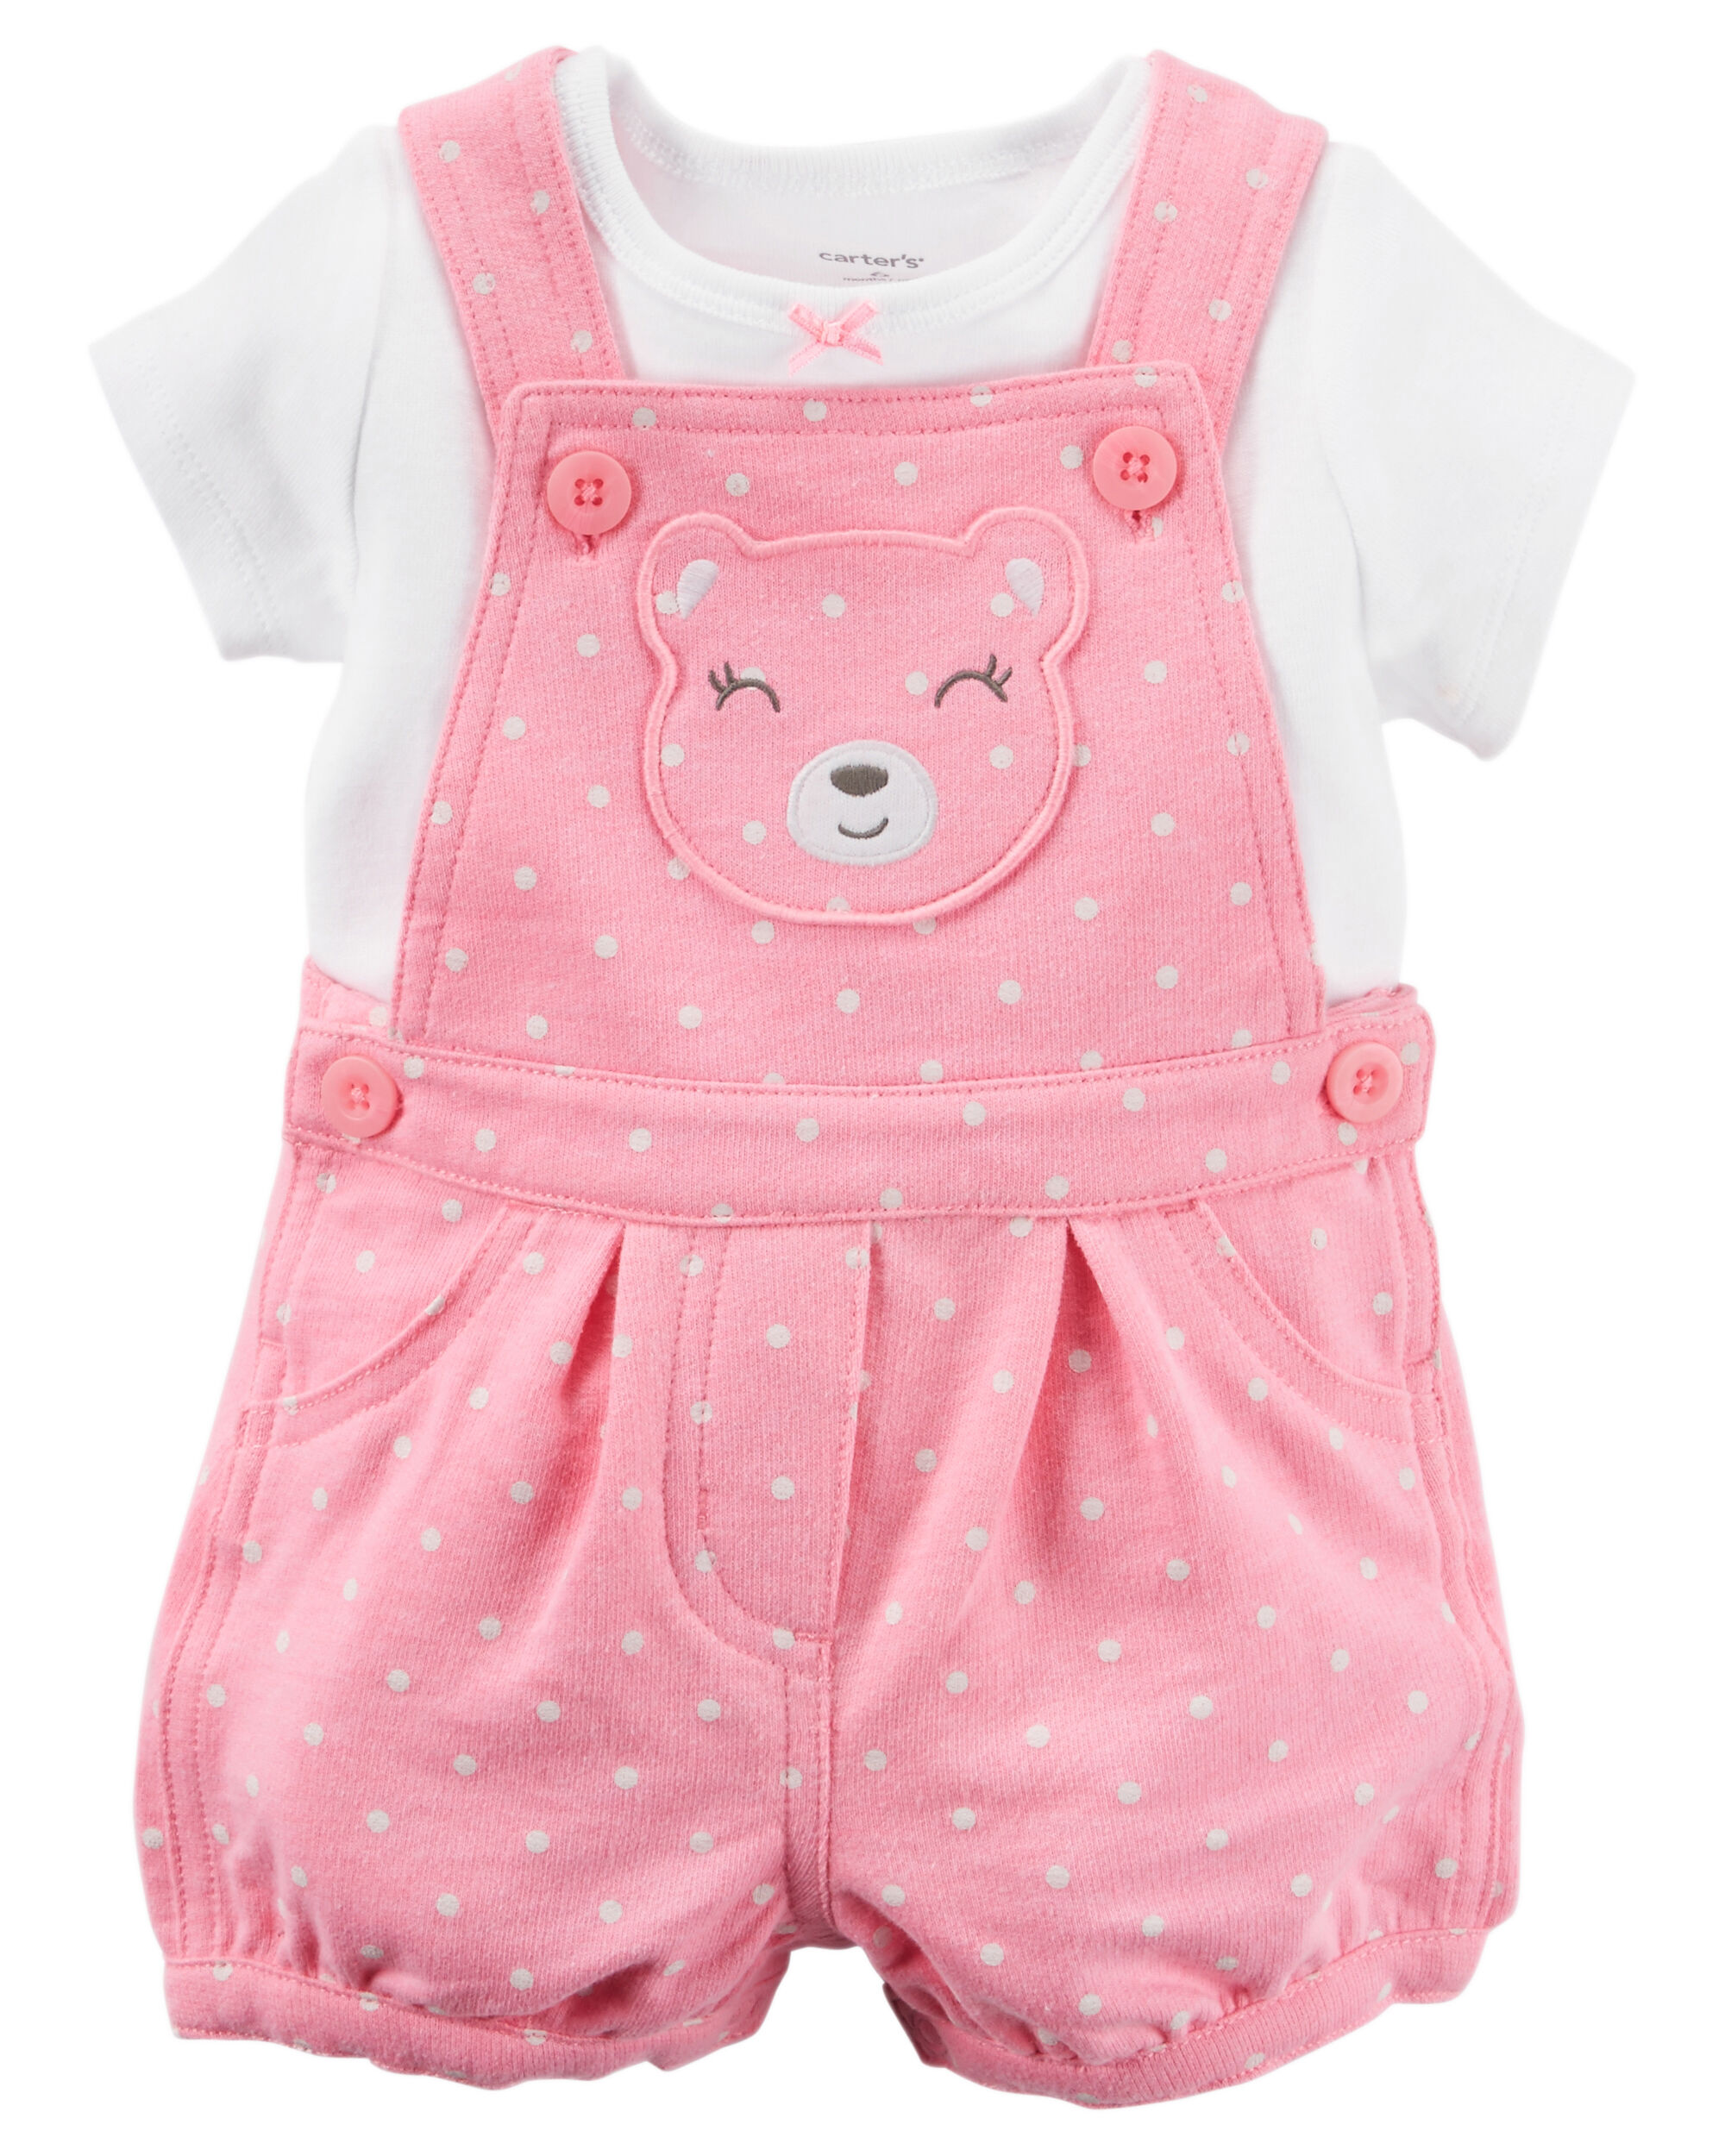 2 piece tee shortalls set